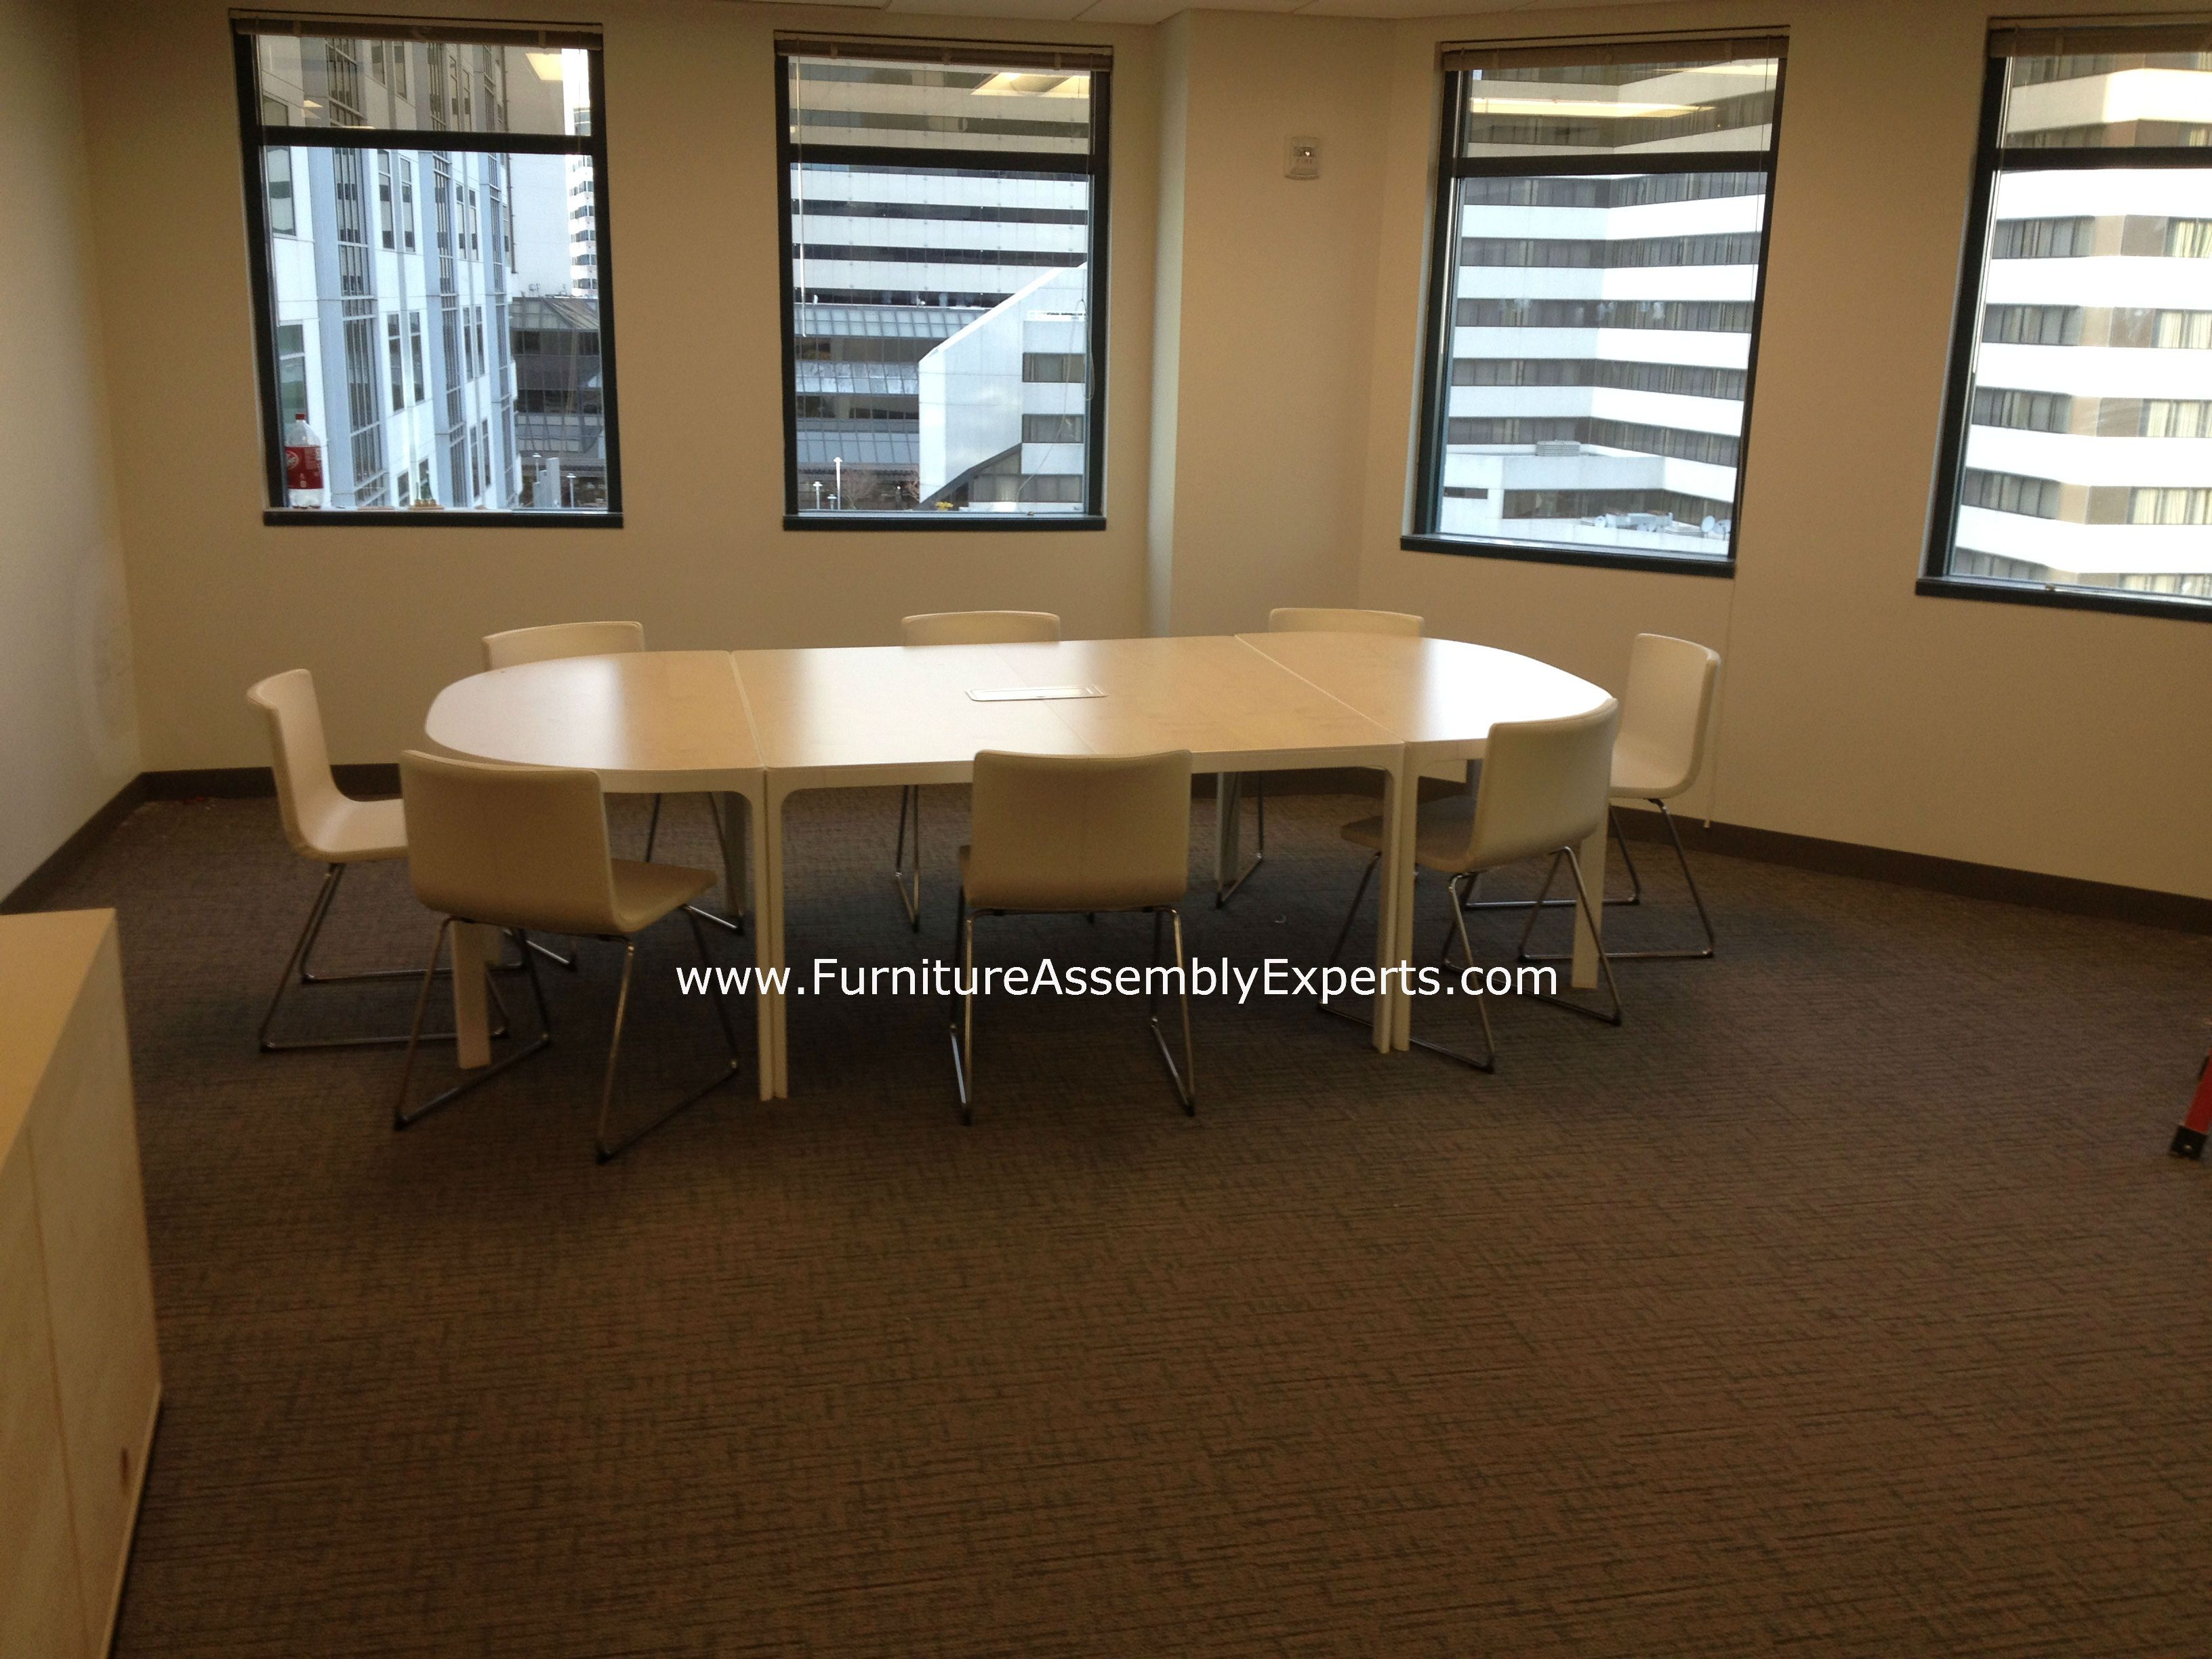 Delightful Furniture Assembly Experts LLC Provides Same Day Assembly Service For Ikea  Furniture In Washington DC Metro Area. Call Or Email Us For Fast Service Or  Call